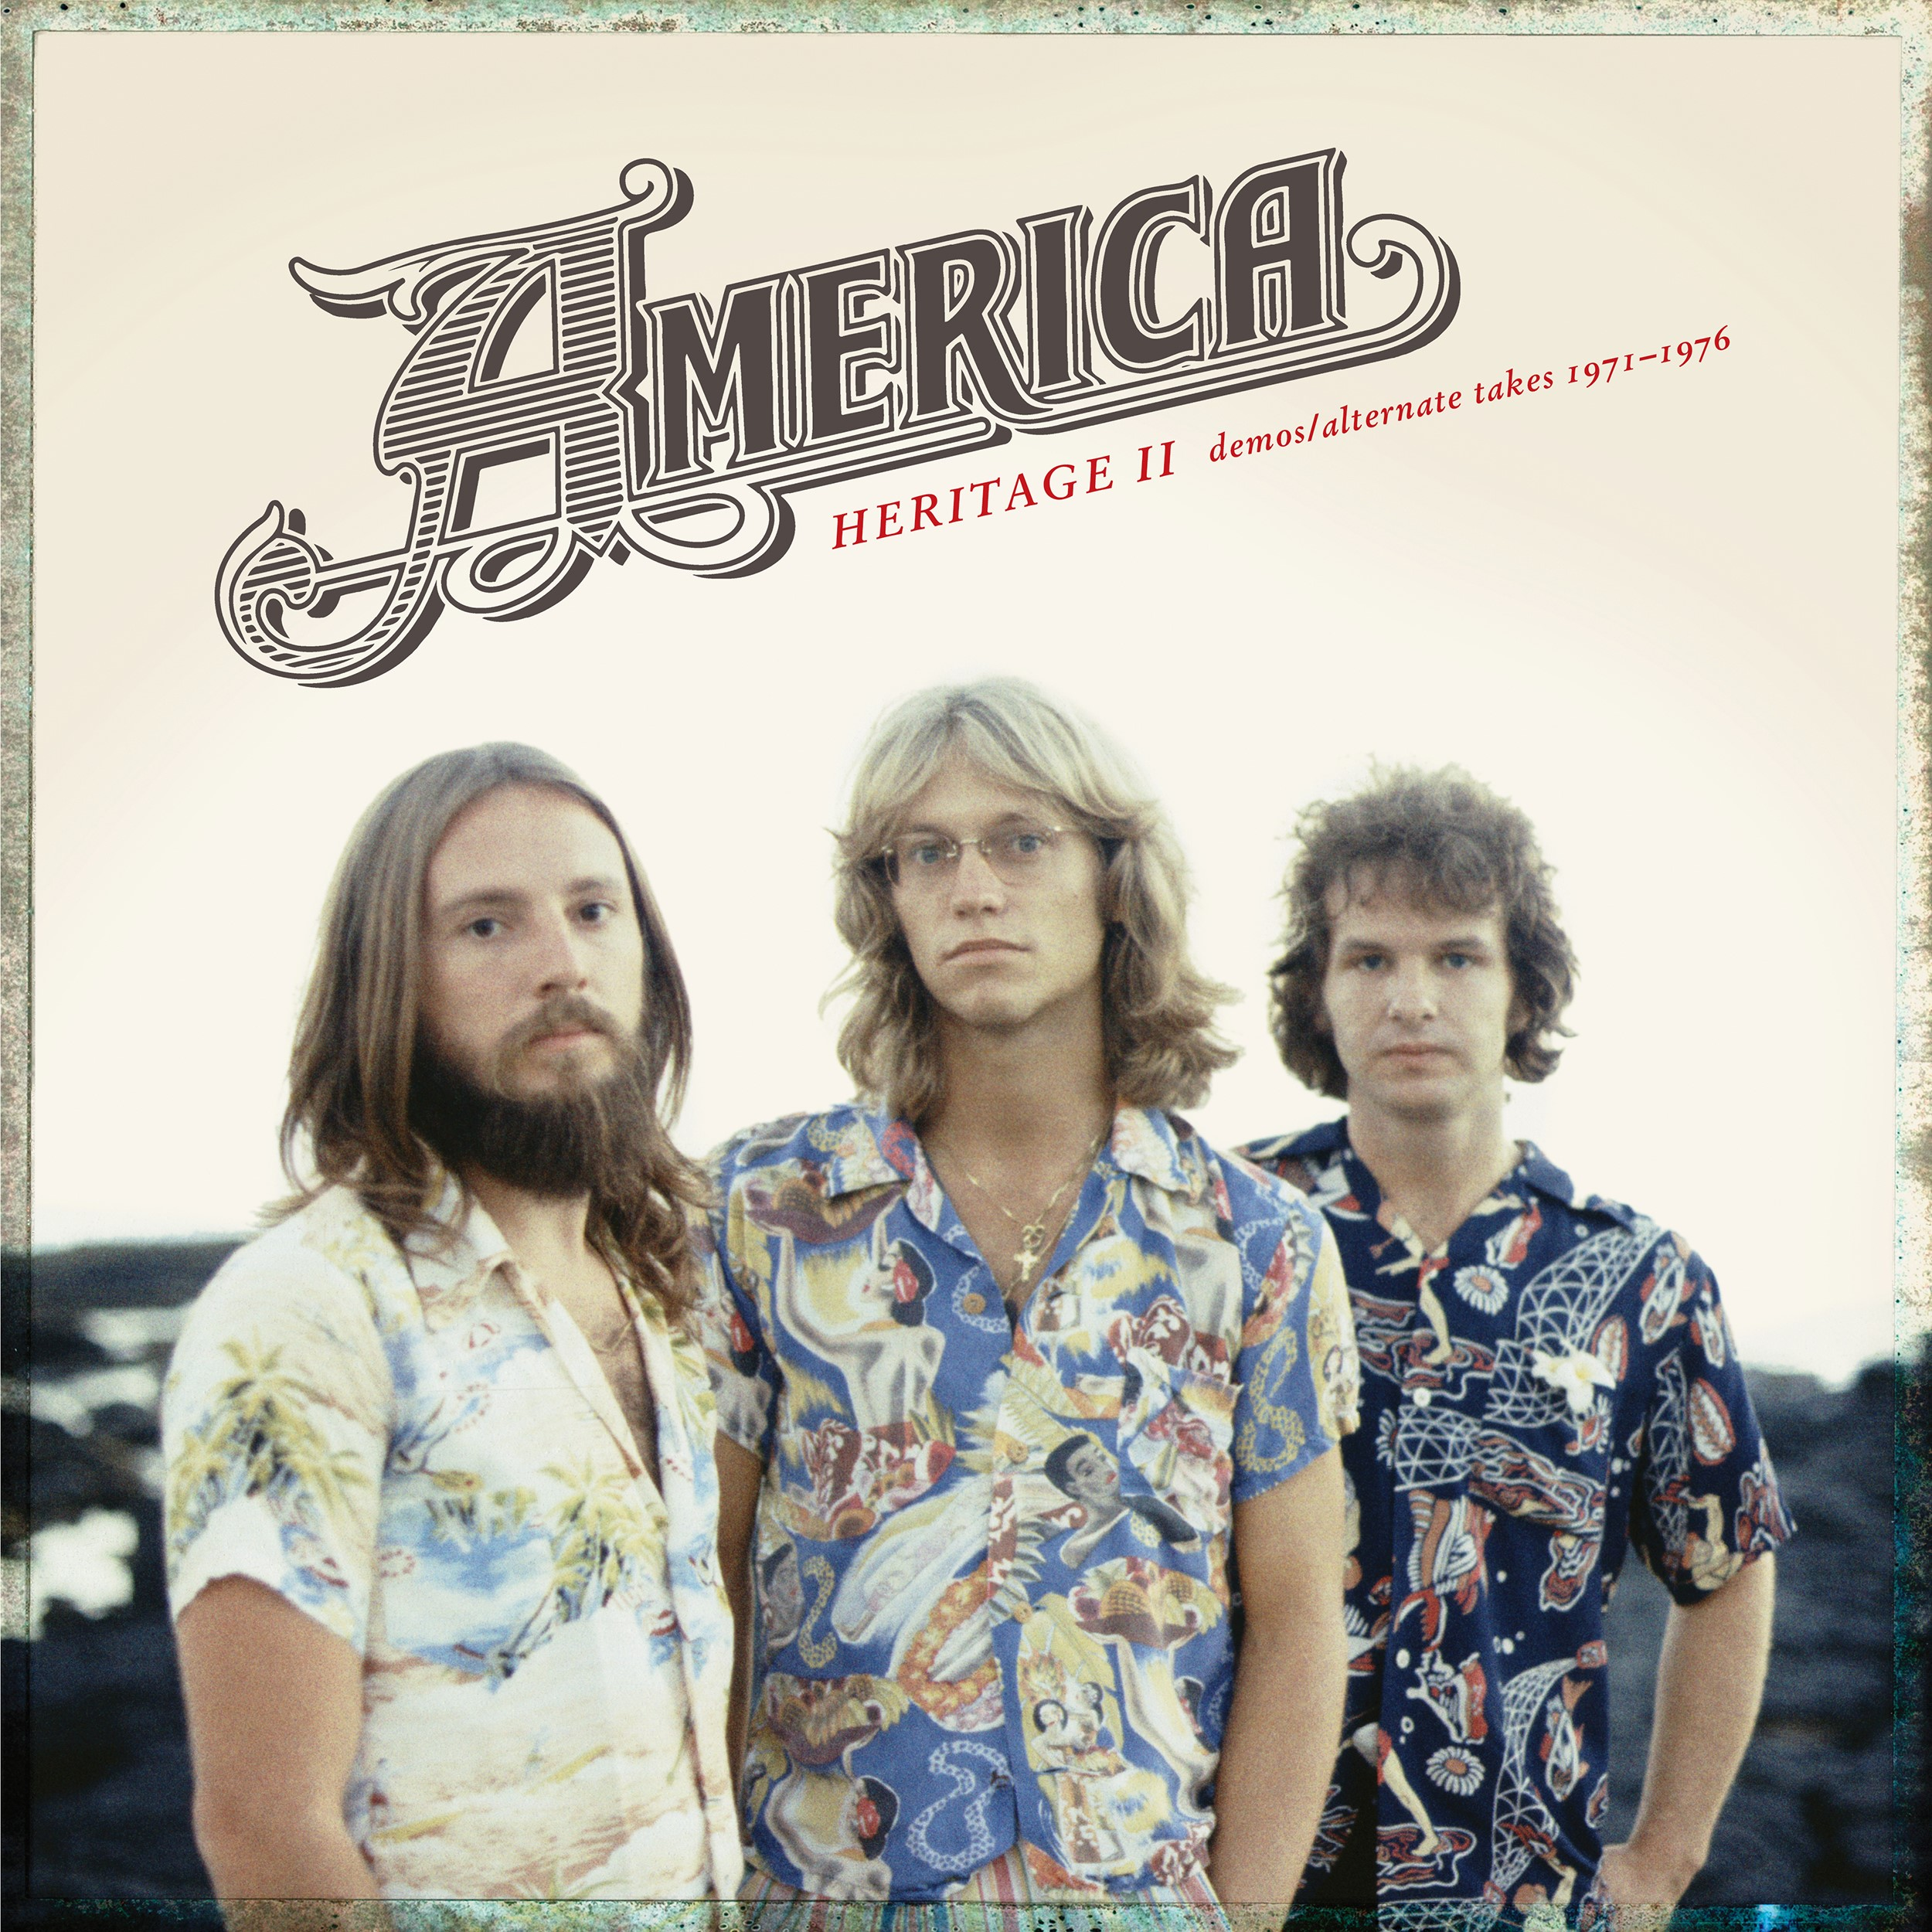 America - Heritage II: Demos/Alternate Takes 1971-1976 [RSD Drops Aug 2020]